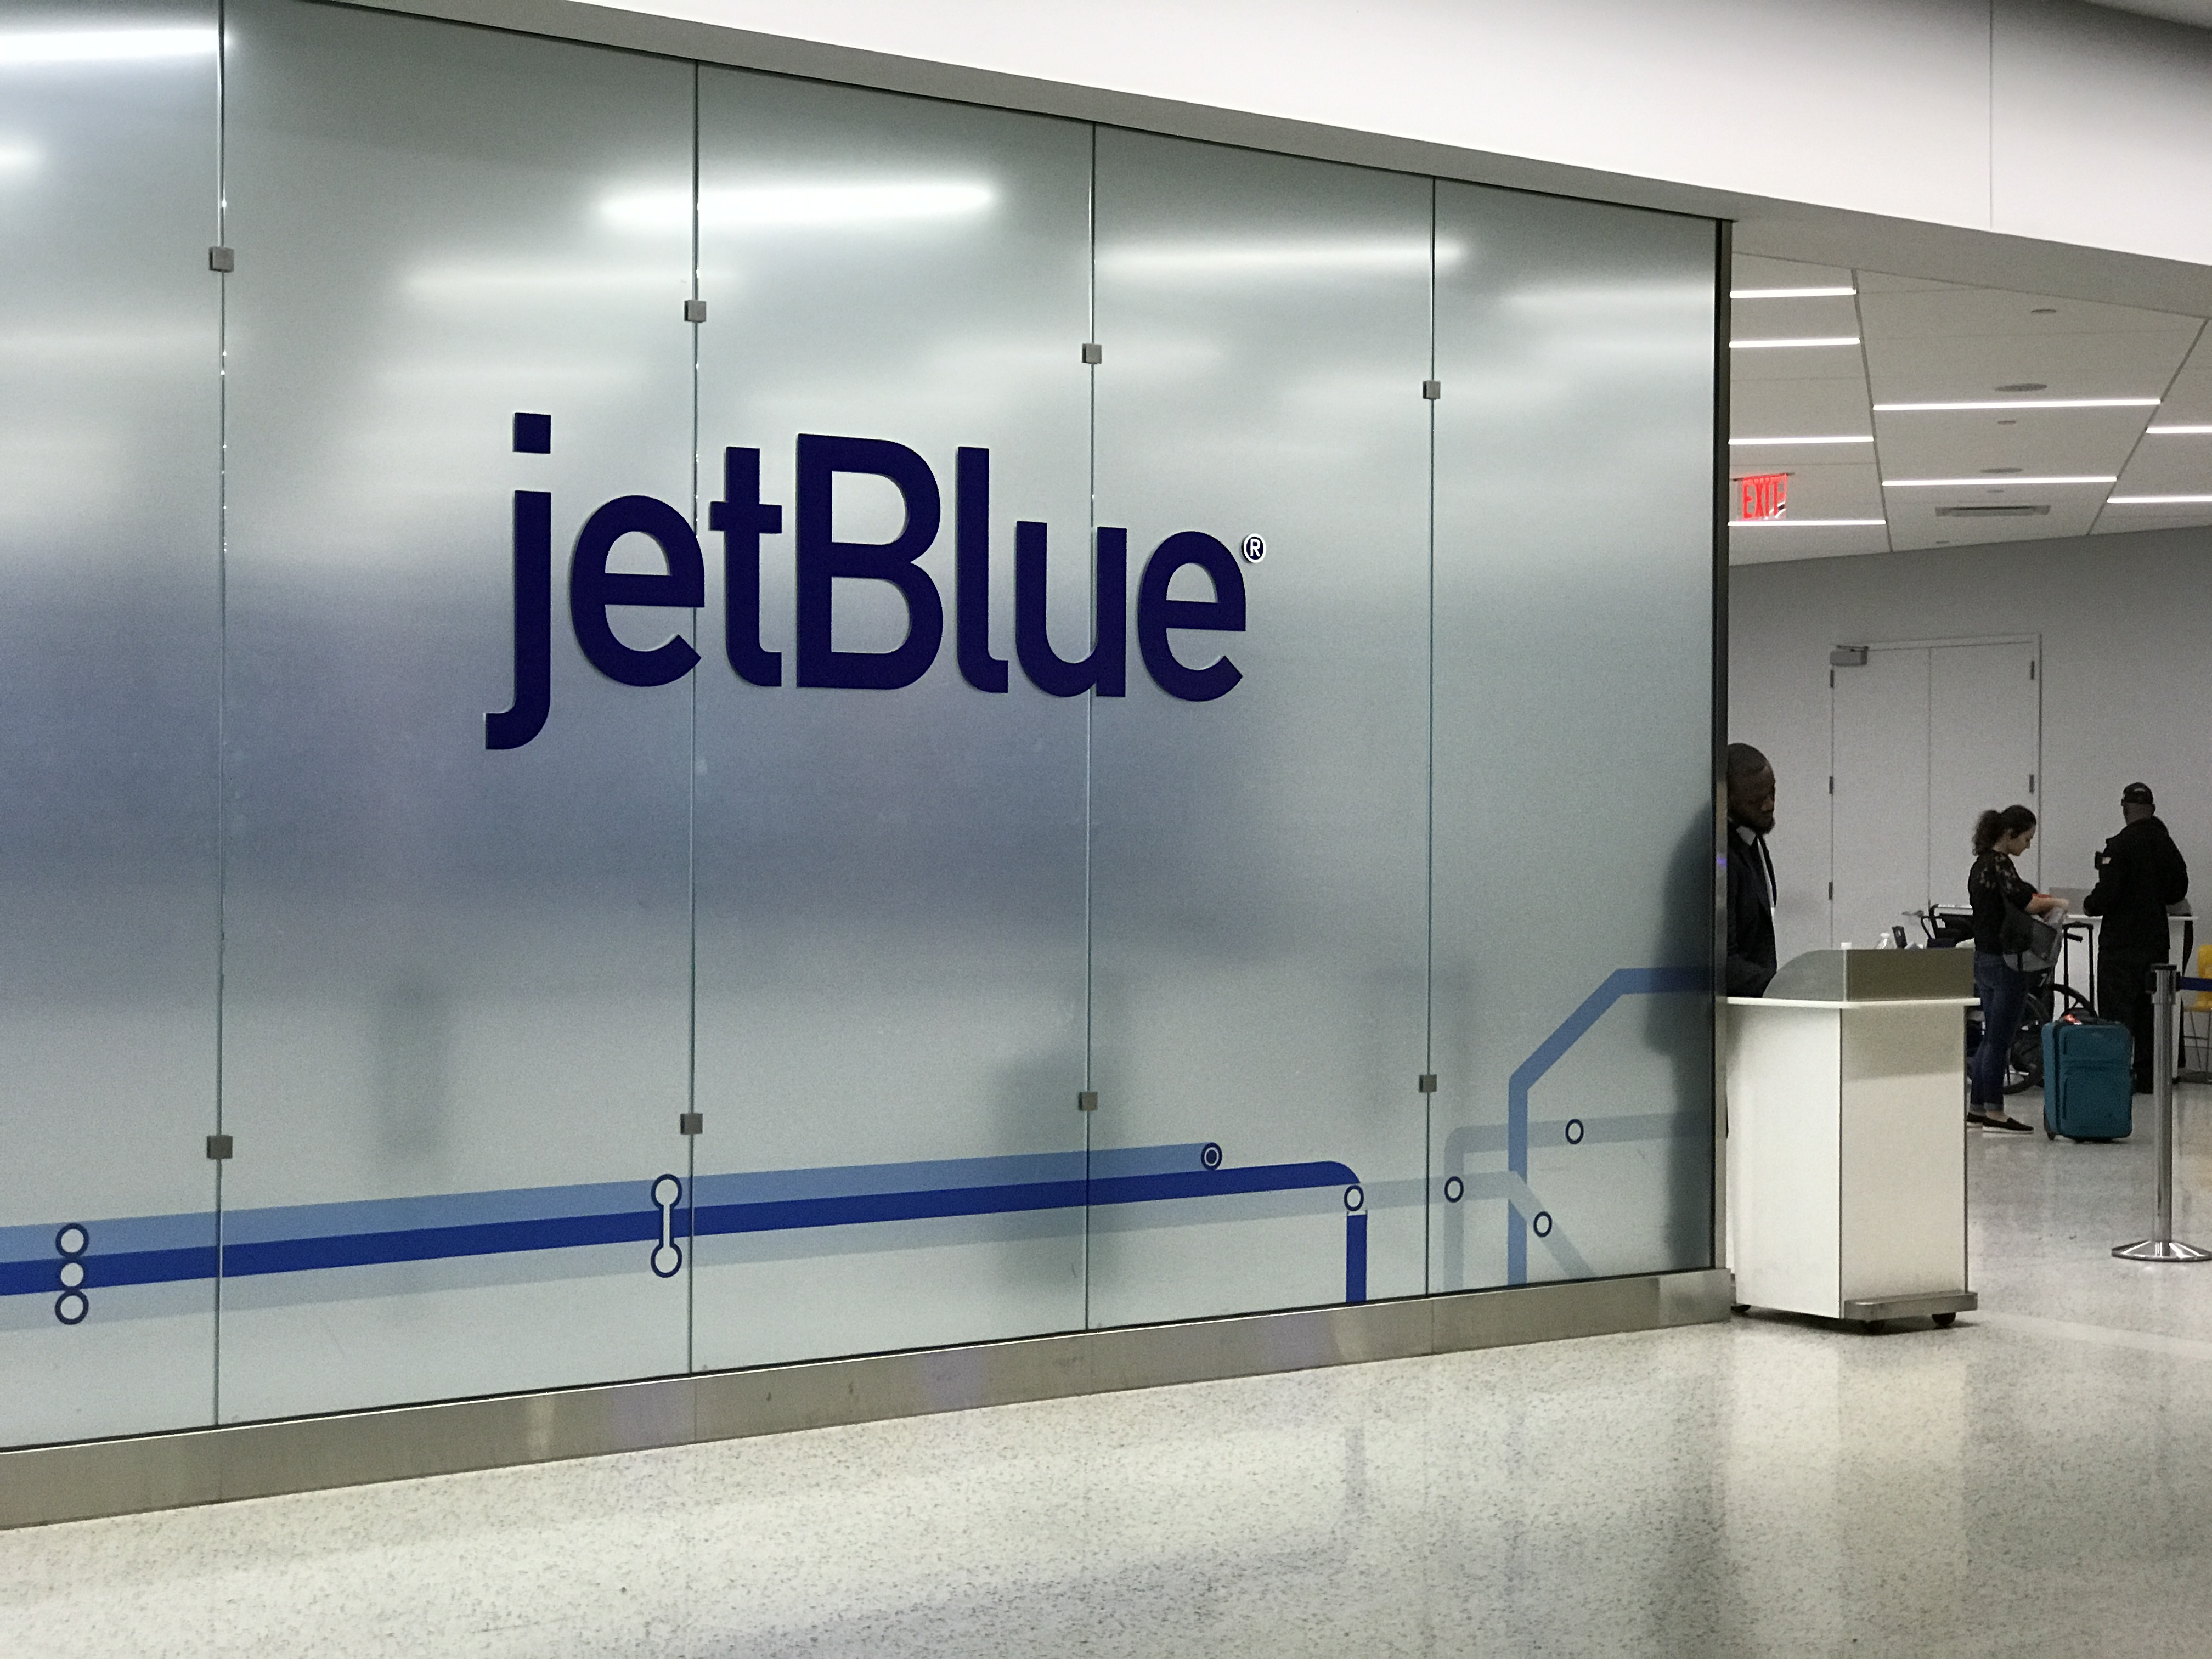 jetblue check-in time before flight